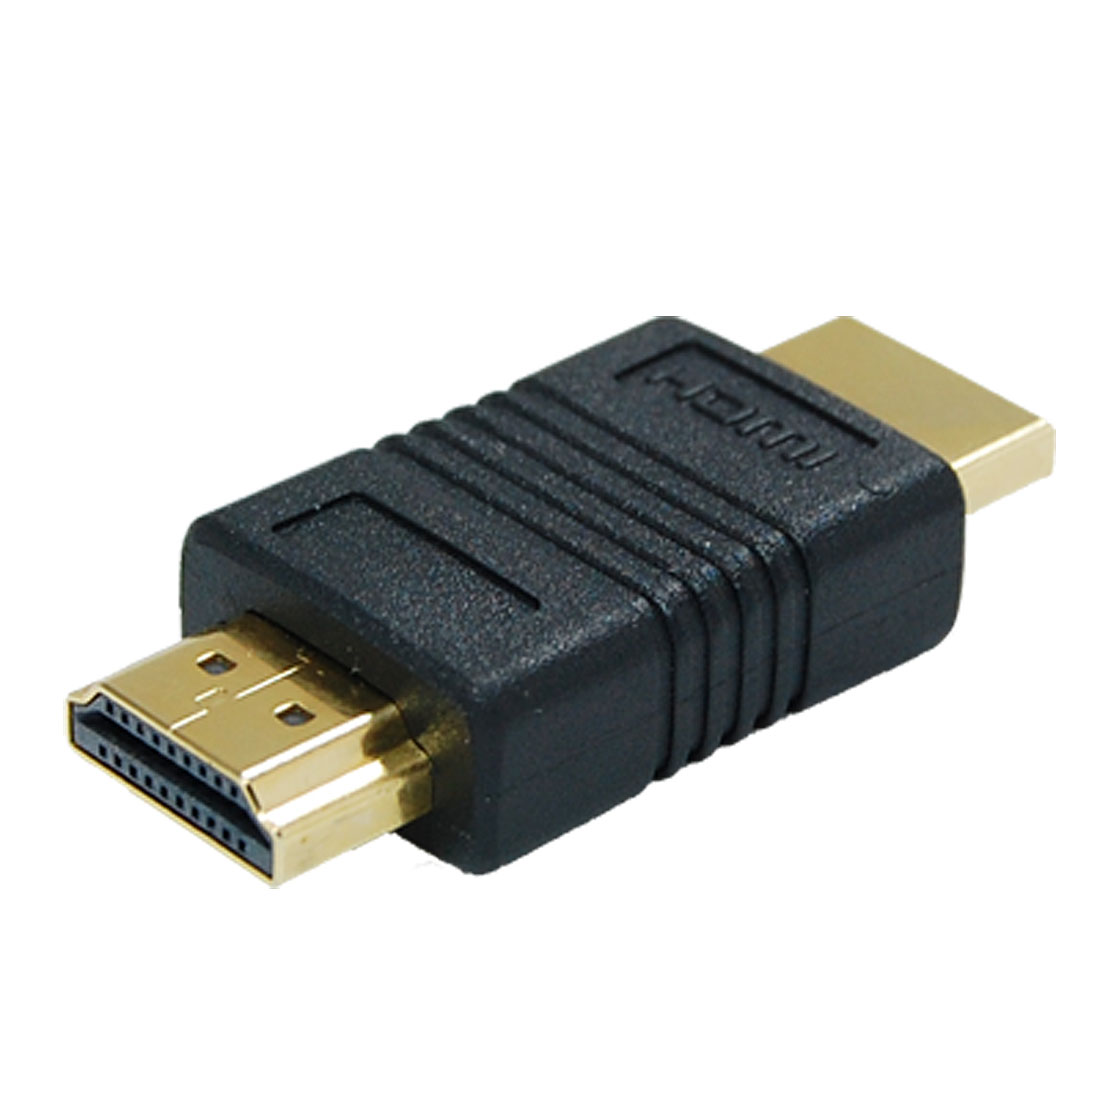 19 Pin HDMI Male to Male Adapter Coupler for HDTV